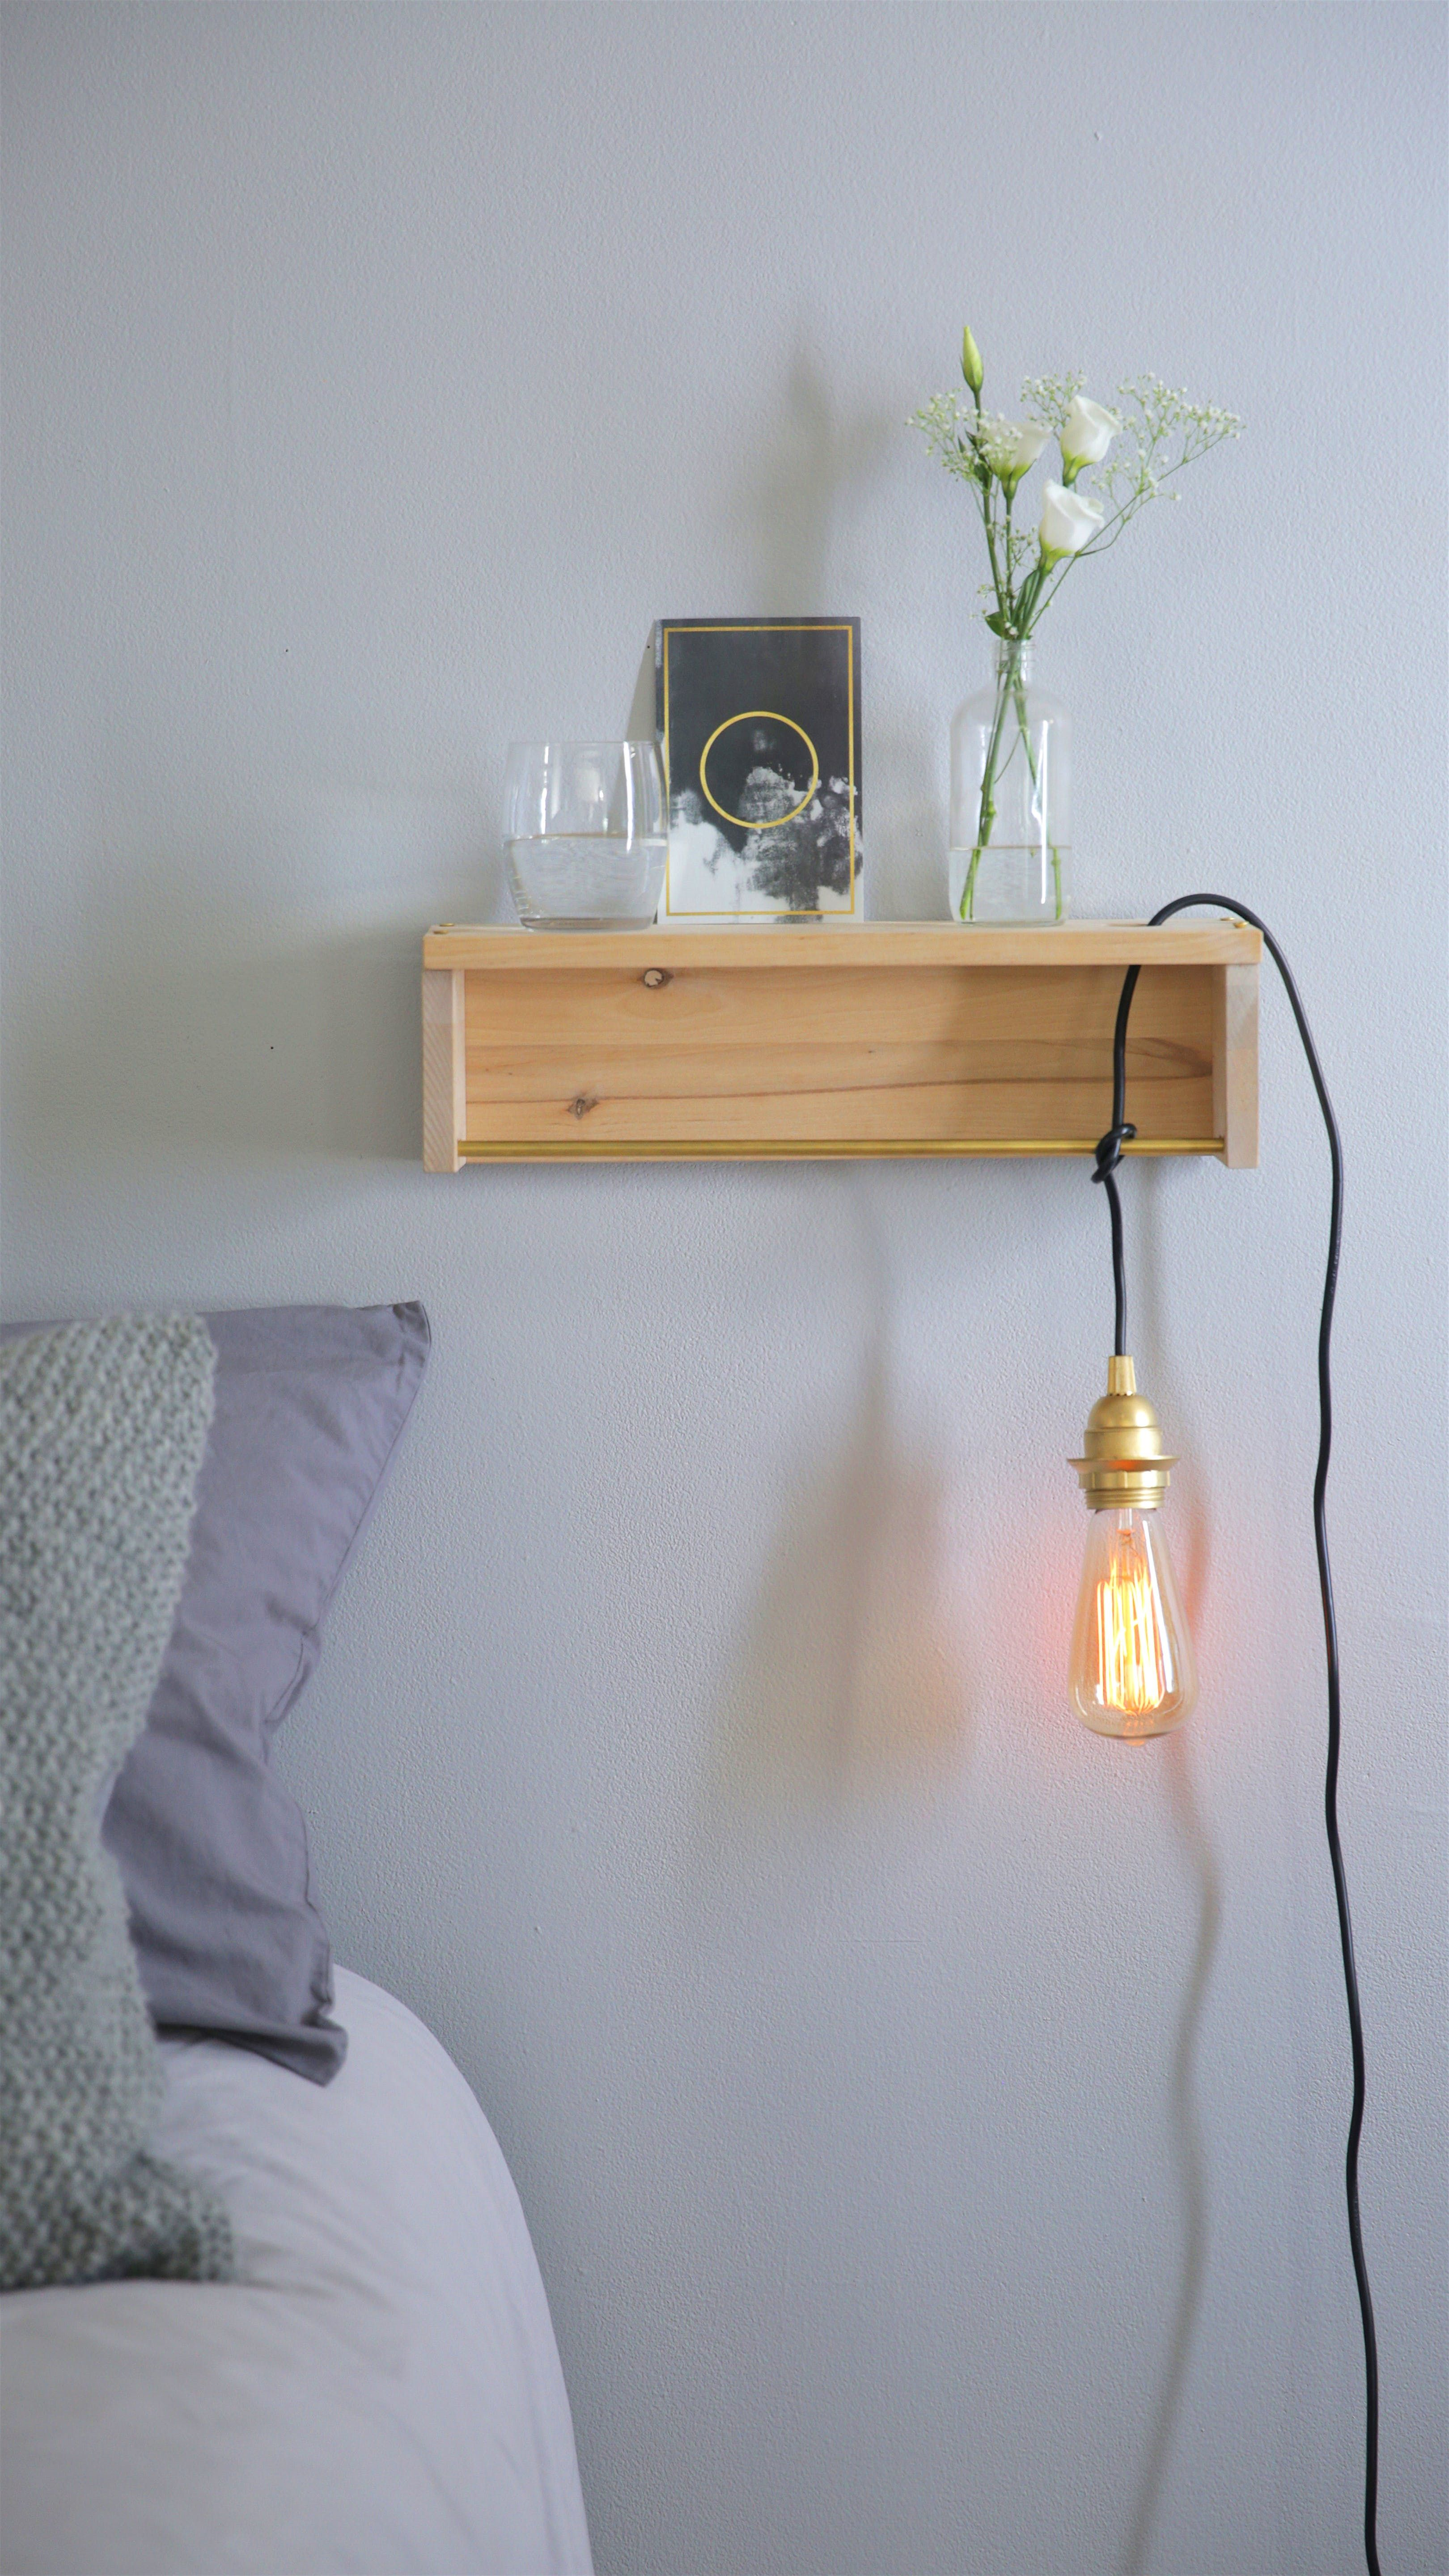 This IKEA Hack Bedside Shelf is Ideal for Small Spaces